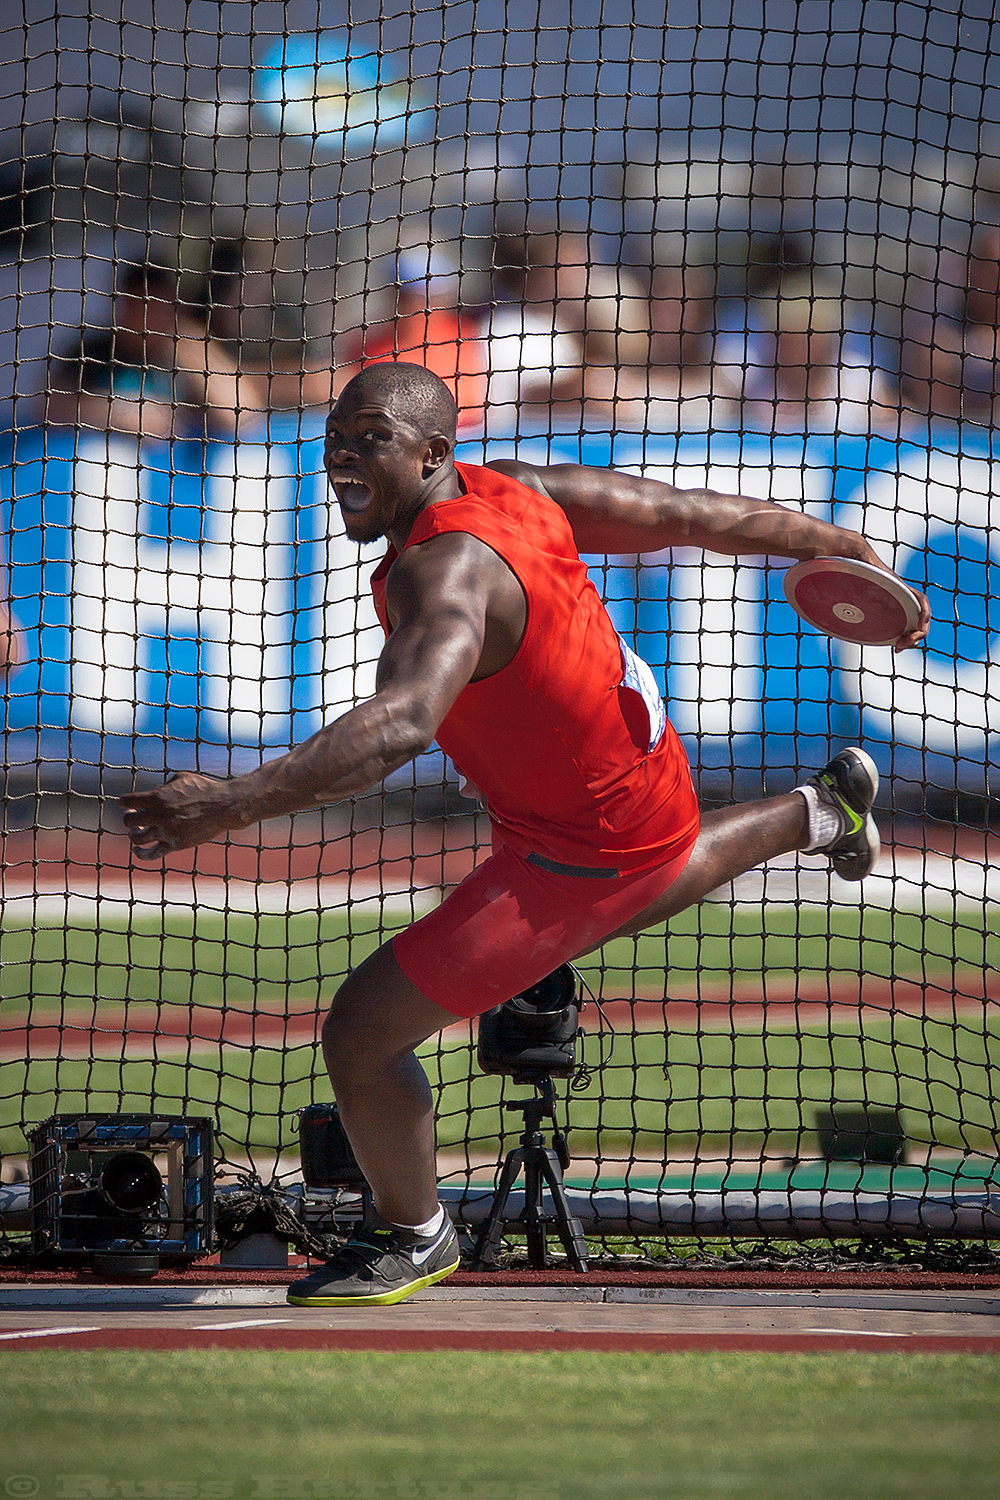 Steven Mozia competing in discus at the NCAA Division 1 National Championships in Eugene, Oregon. Steven also competed in the 2016 Rio Olympics for his home country of Nigeria.